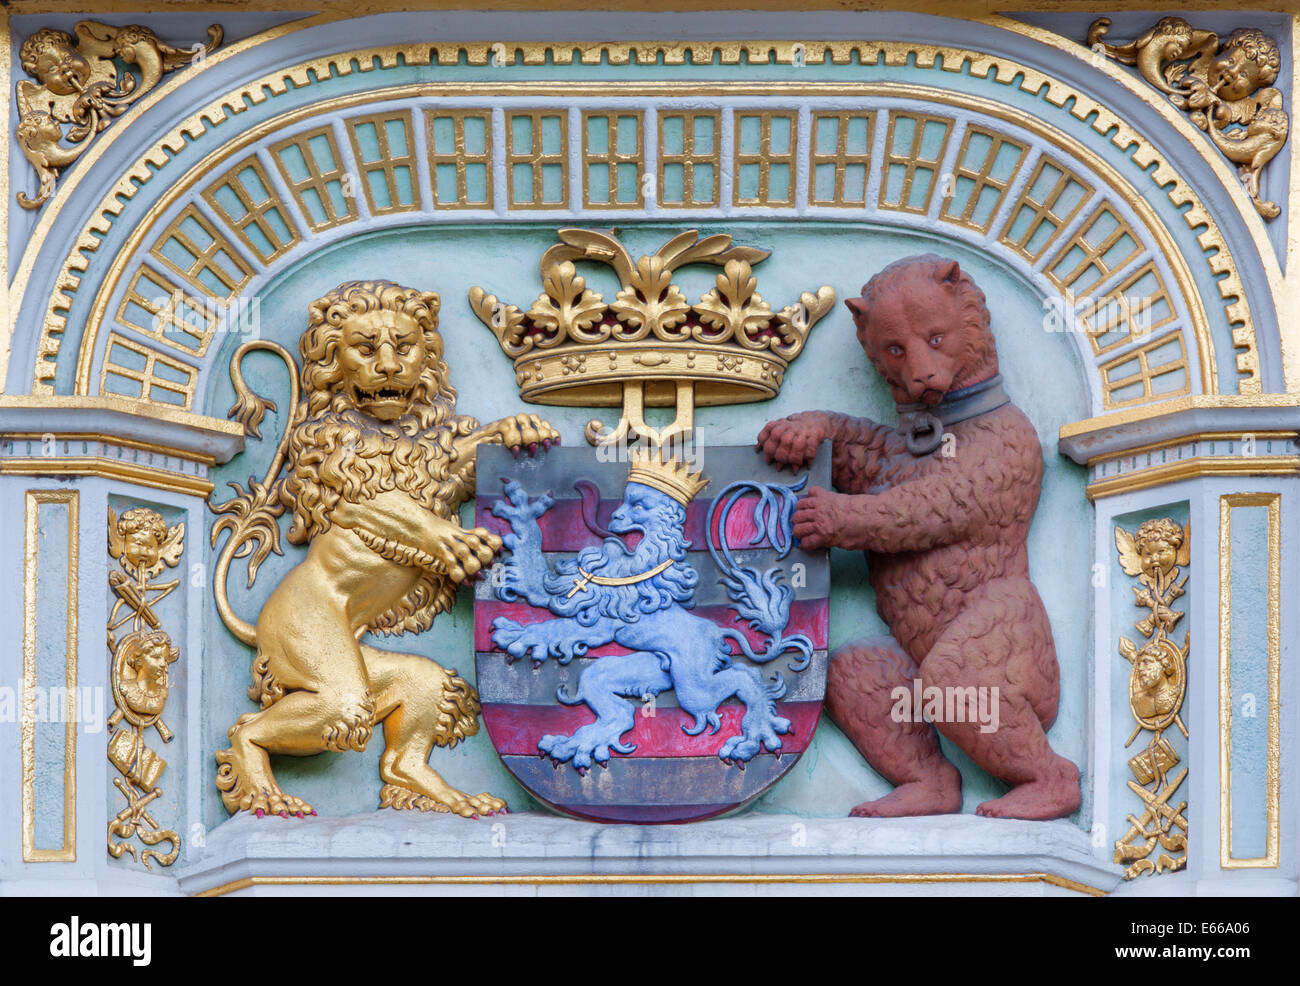 BRUGES, BELGIUM - JUNE 12, 2014: The Heraldry of town Bruges from the house on Burg square. - Stock Image